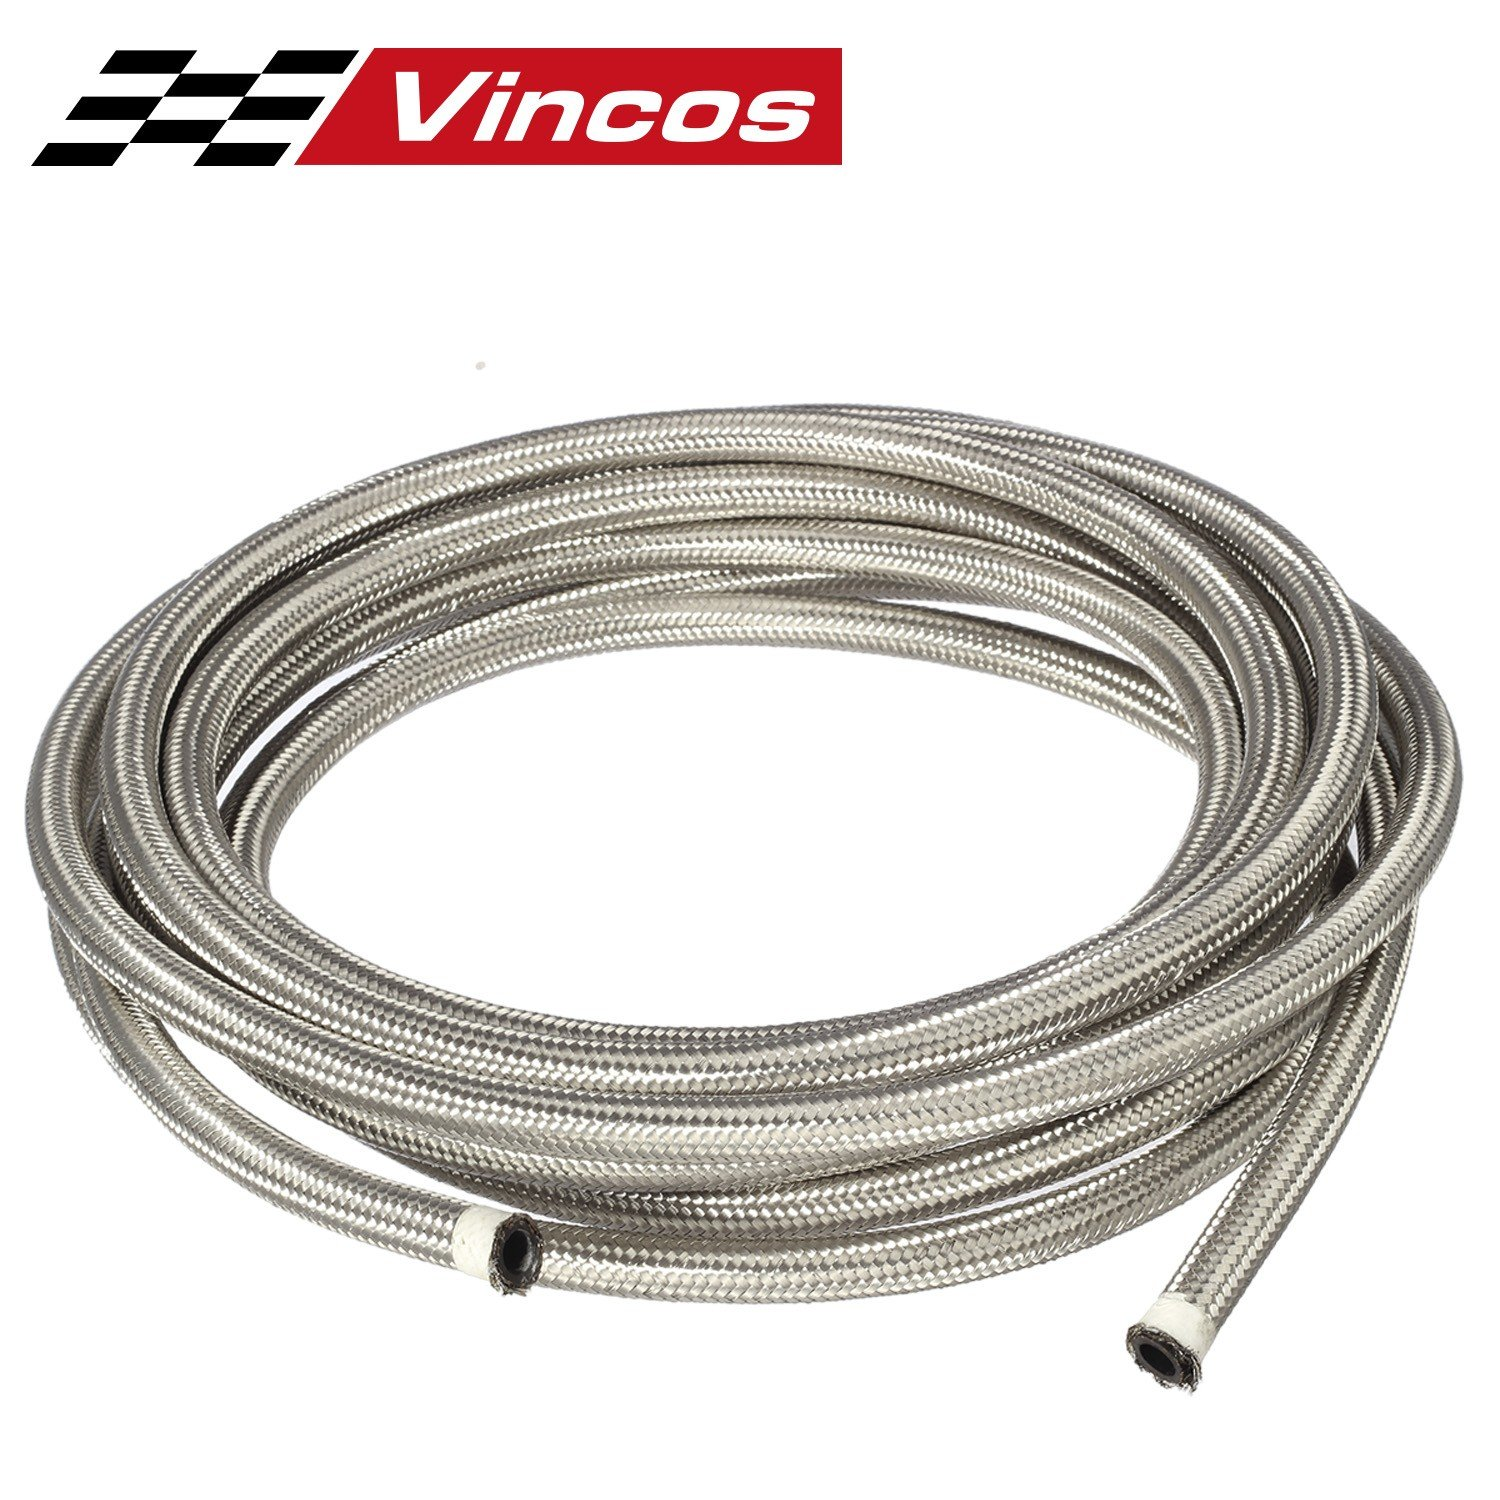 25 Ft 6AN AN6 (3/8'') Universal Braided Stainless Steel CPE Oil Fuel Gas Line Hose by Vincos